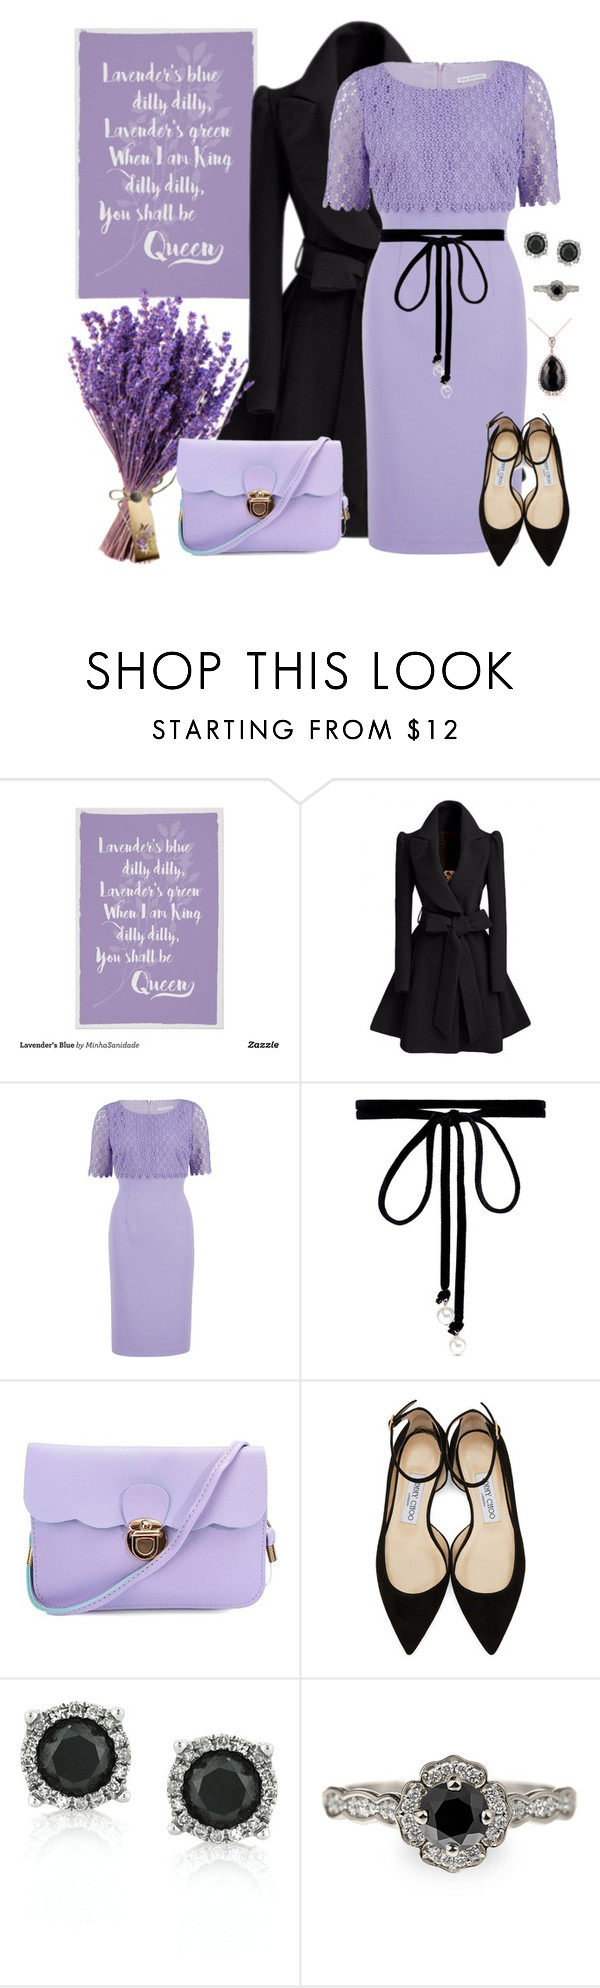 """""""You shall  be queen"""" by joyfulmum ❤ liked on Polyvore featuring Gina Bacconi, Joomi Lim, Jimmy Choo, Mark Broumand and Kobelli"""